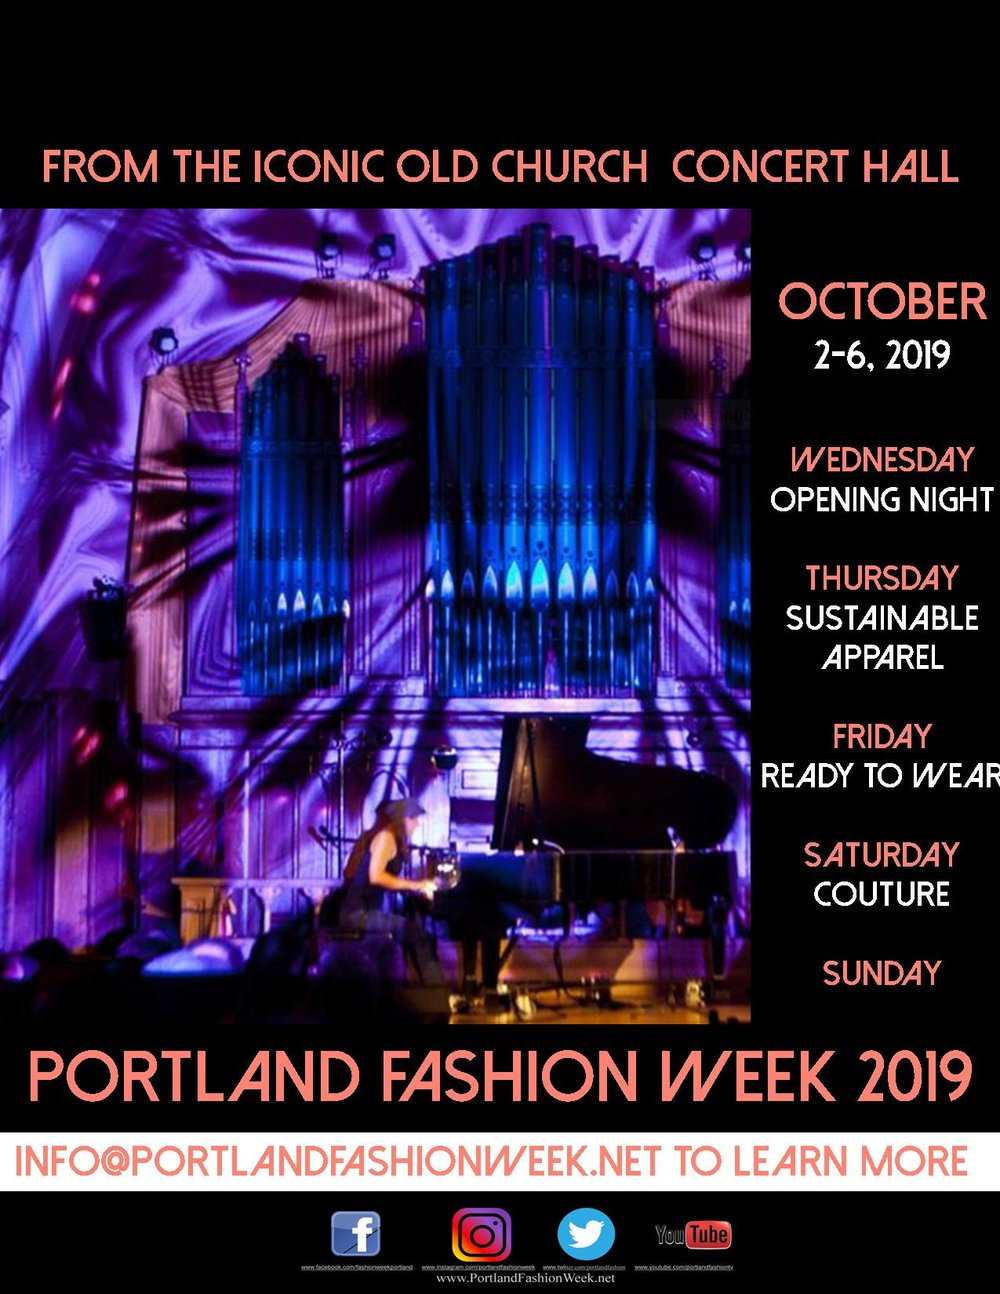 PFW 2019 - will be hosted by The Old Church Concert Hall Wed. Oct. 2 - Sun Oct. 6, 2019! Tickets on sale now!